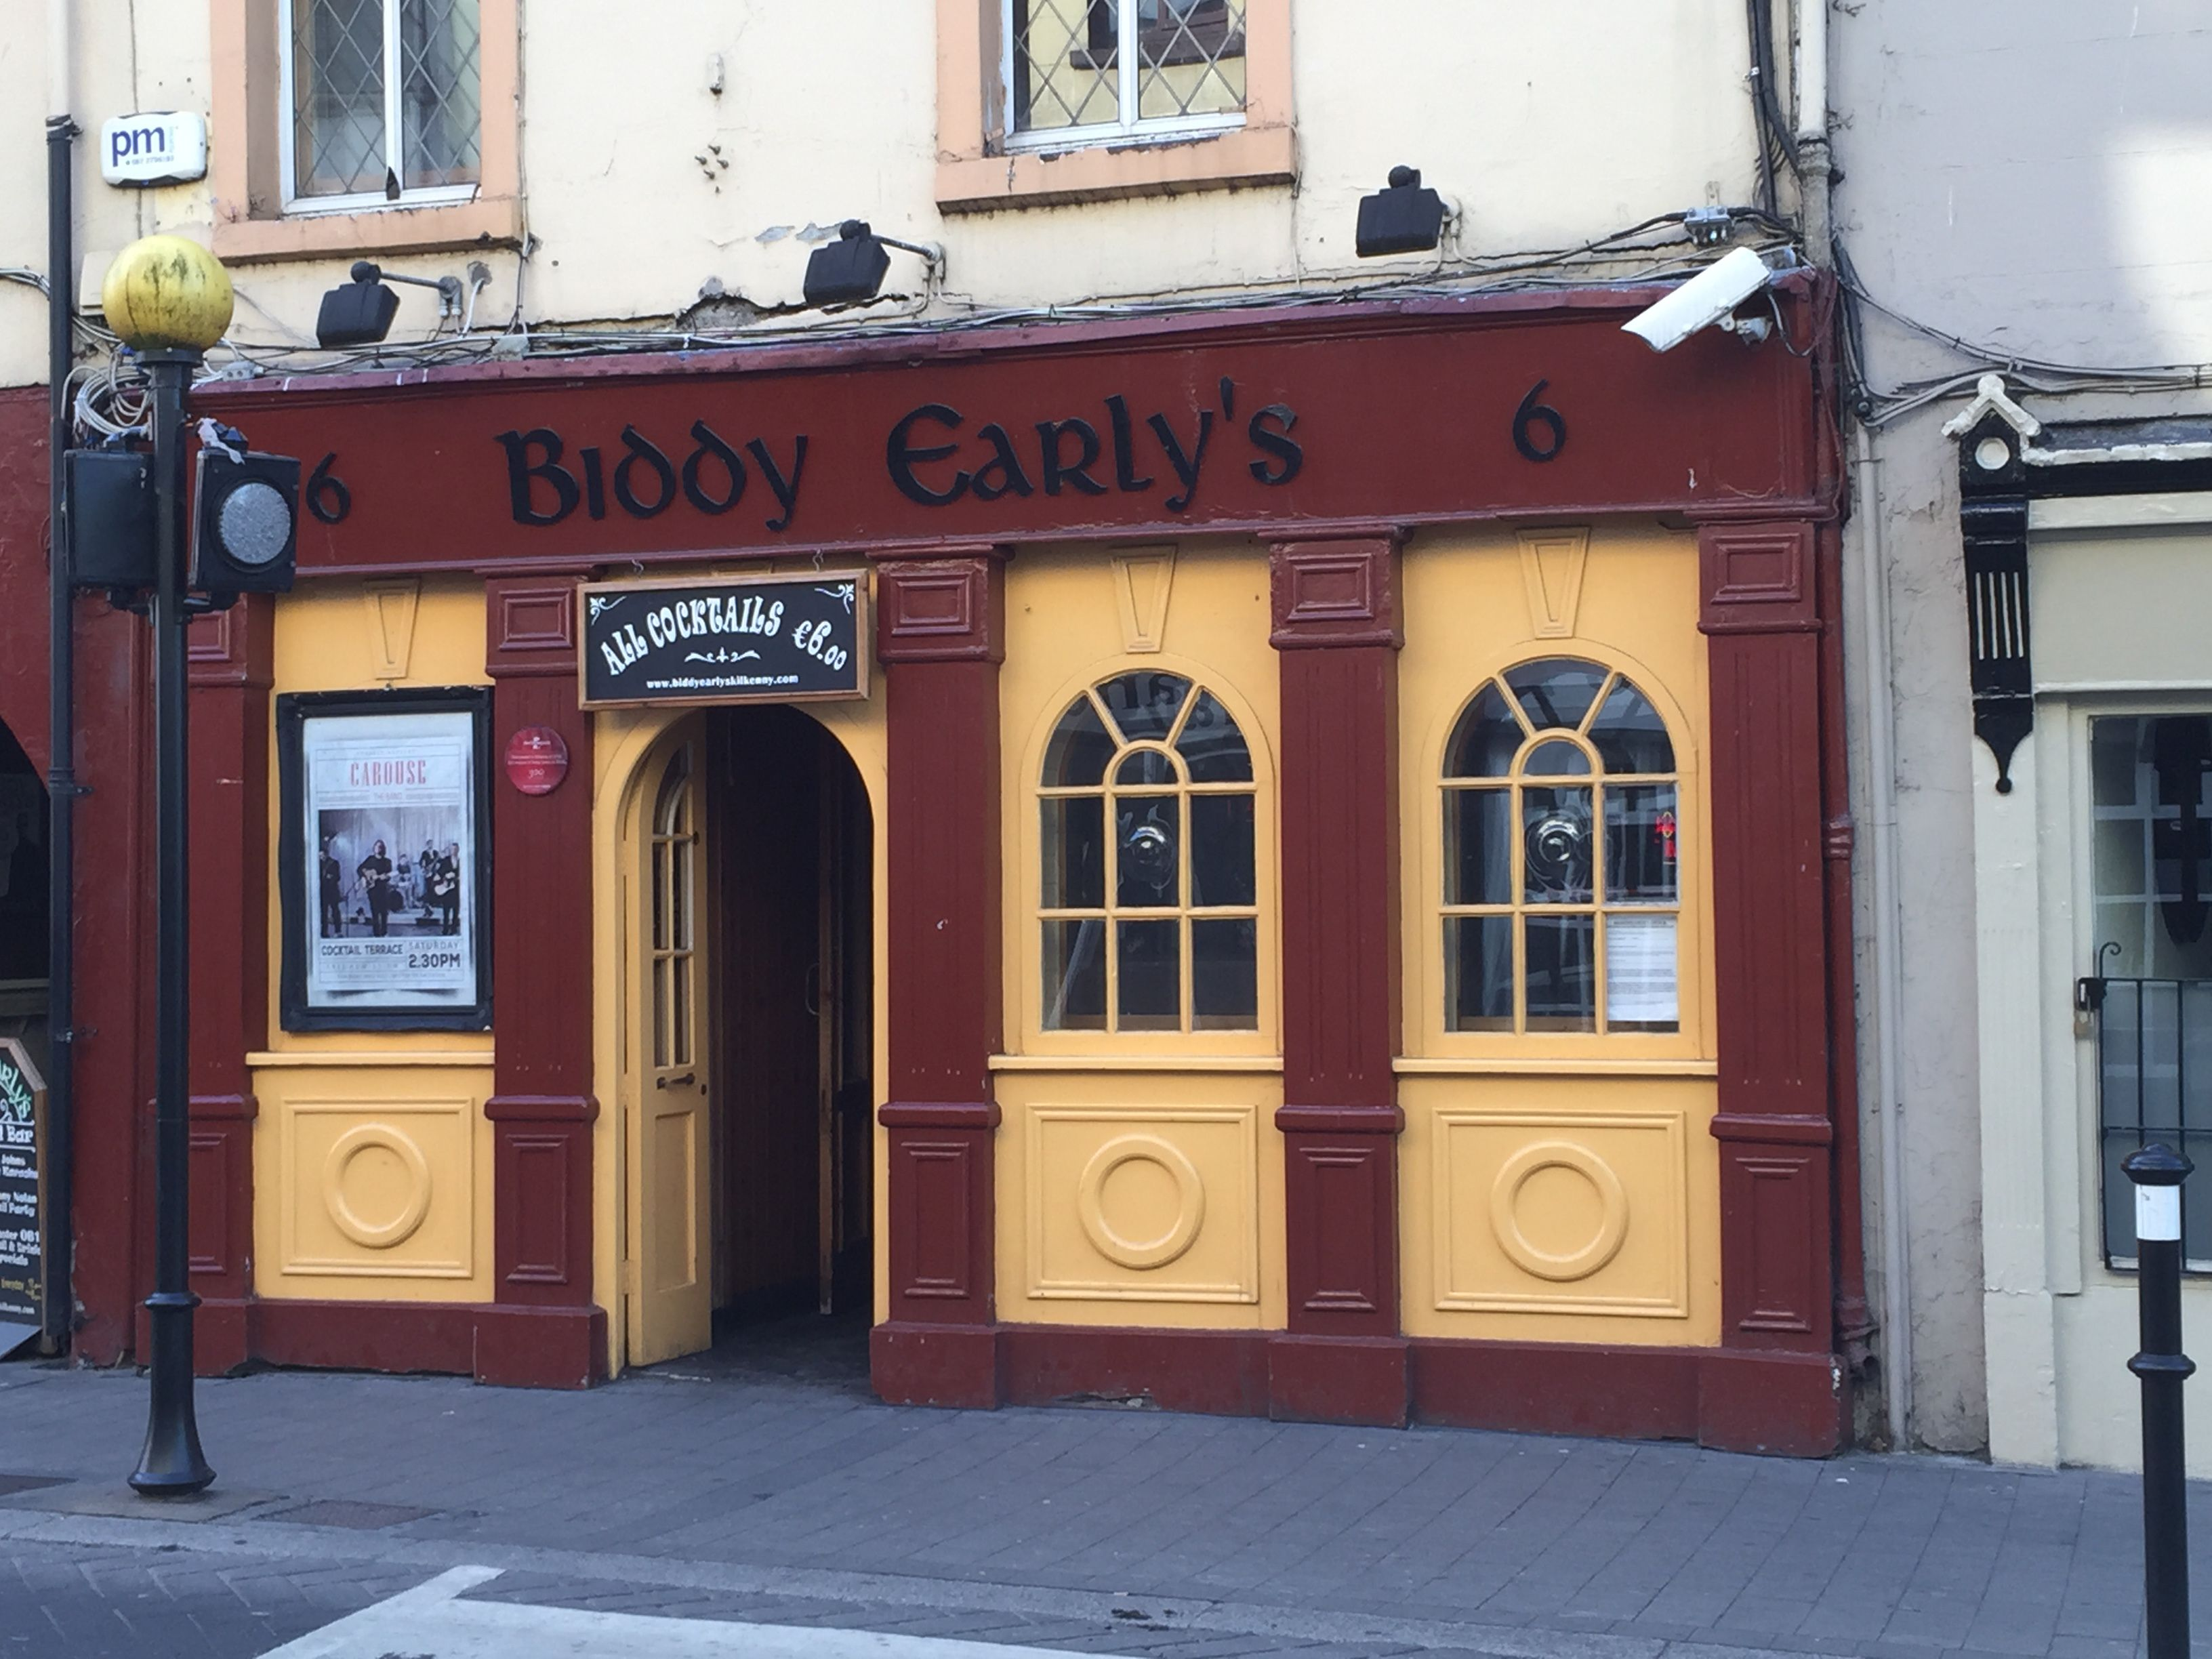 Pin by Women Traveling the World on Ireland pubs Ireland